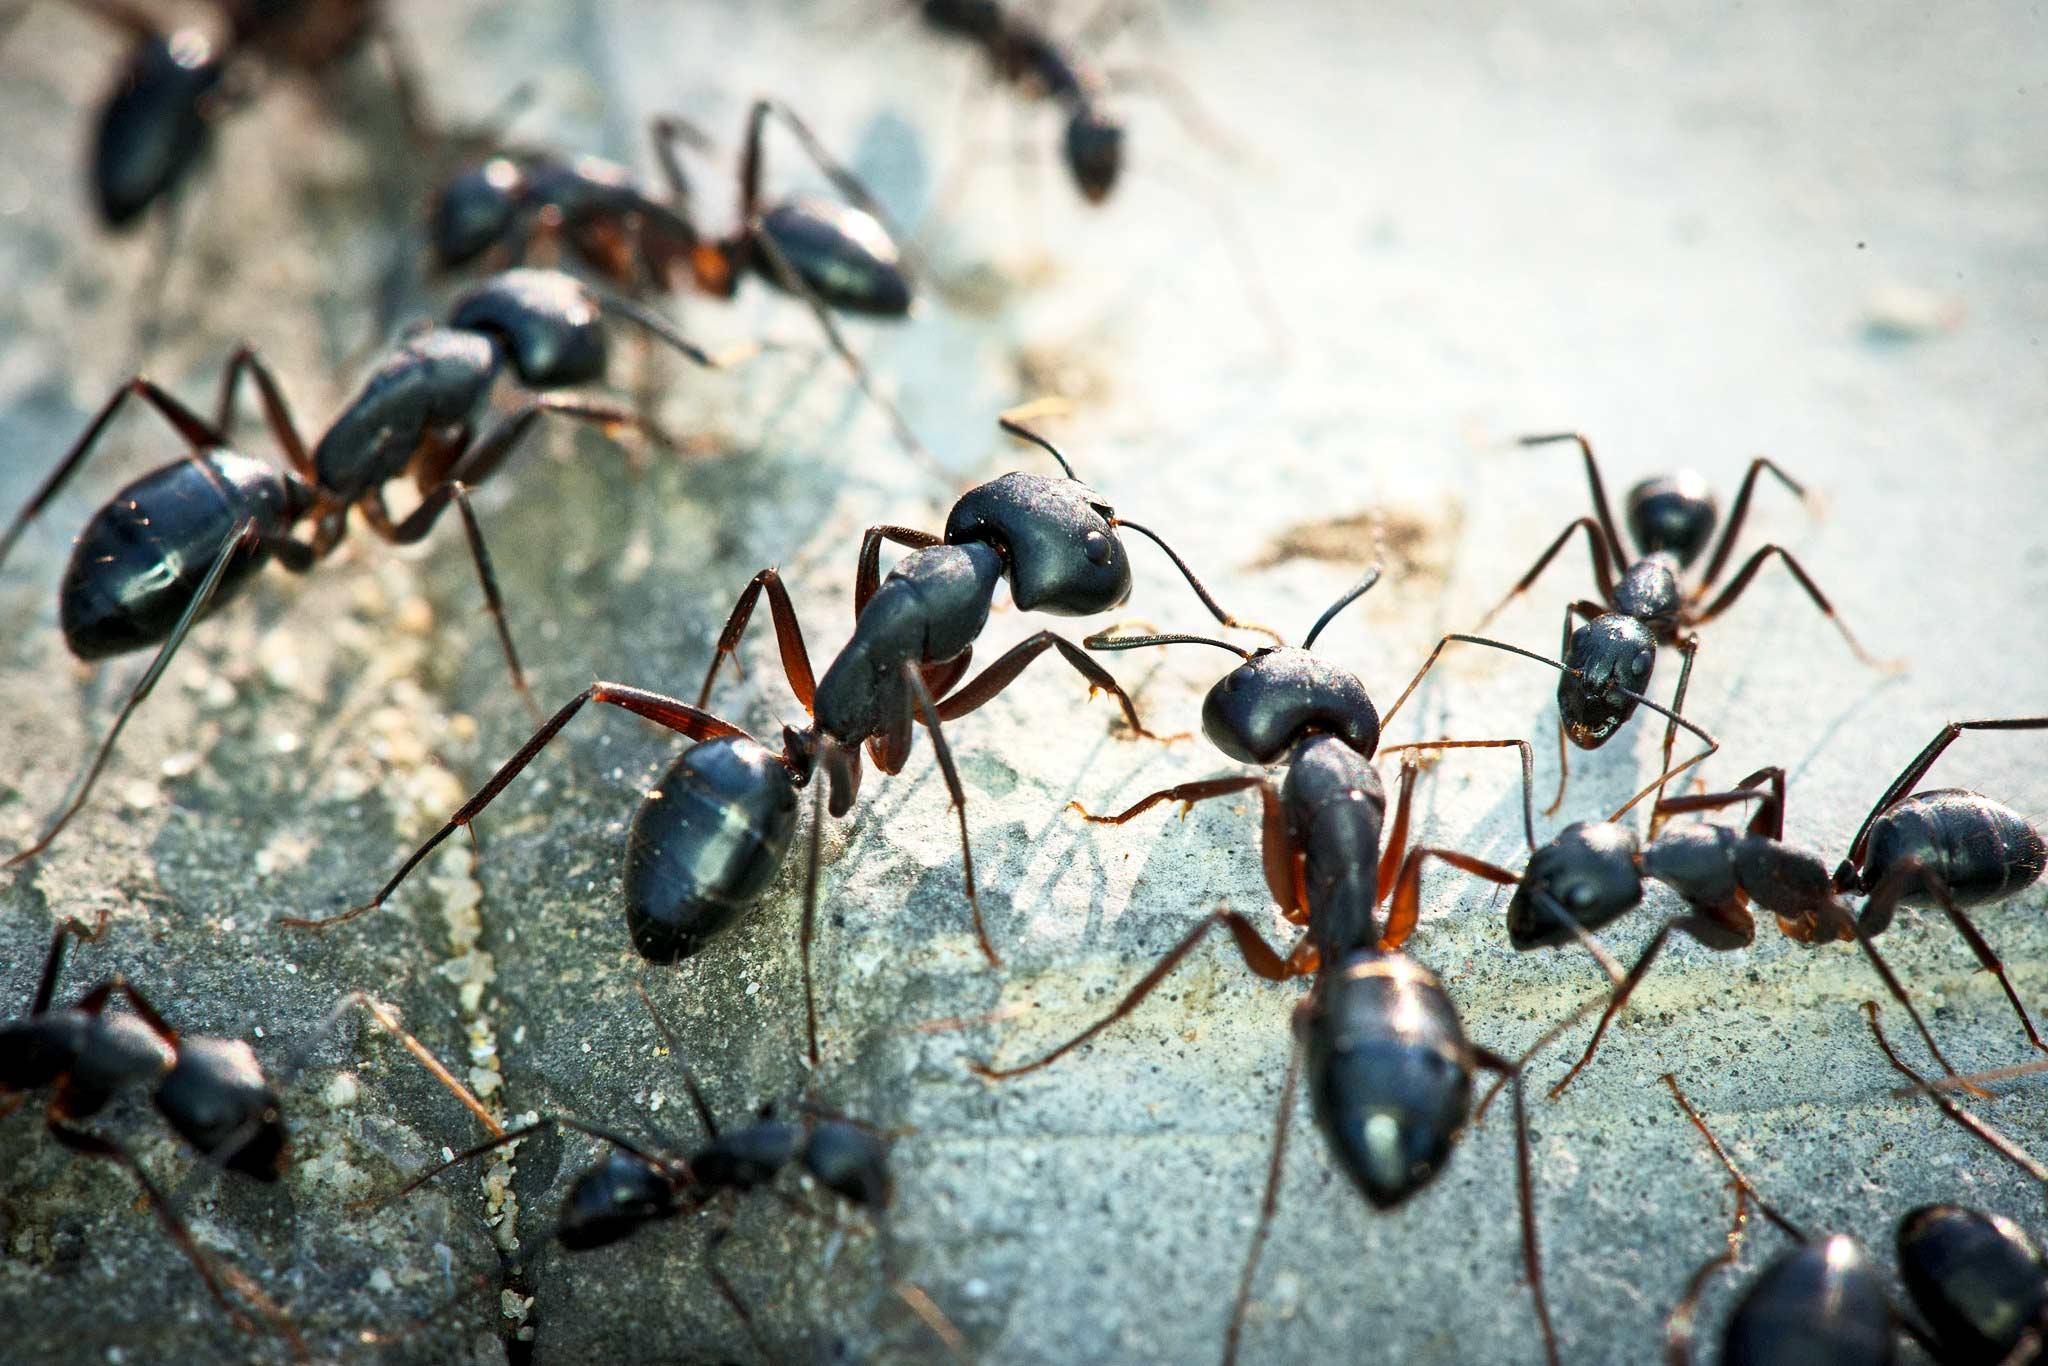 Some ants are lucky: Their job is being lazy